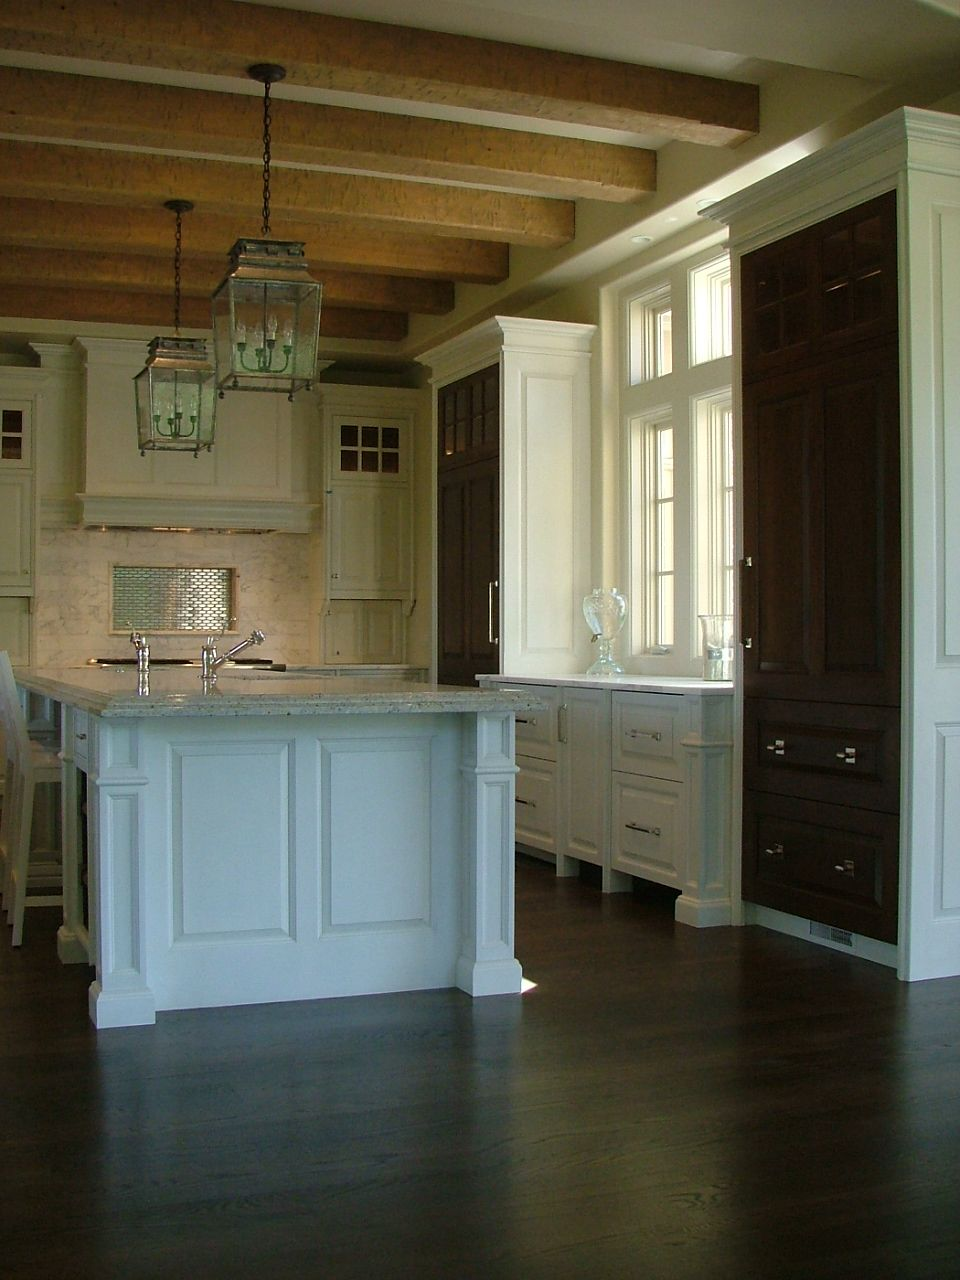 Westwood Cabinetry And Millwork Columbus Ohio Westwoodcabinetry Com Kitchen Cabinets Cabinetry Millwork